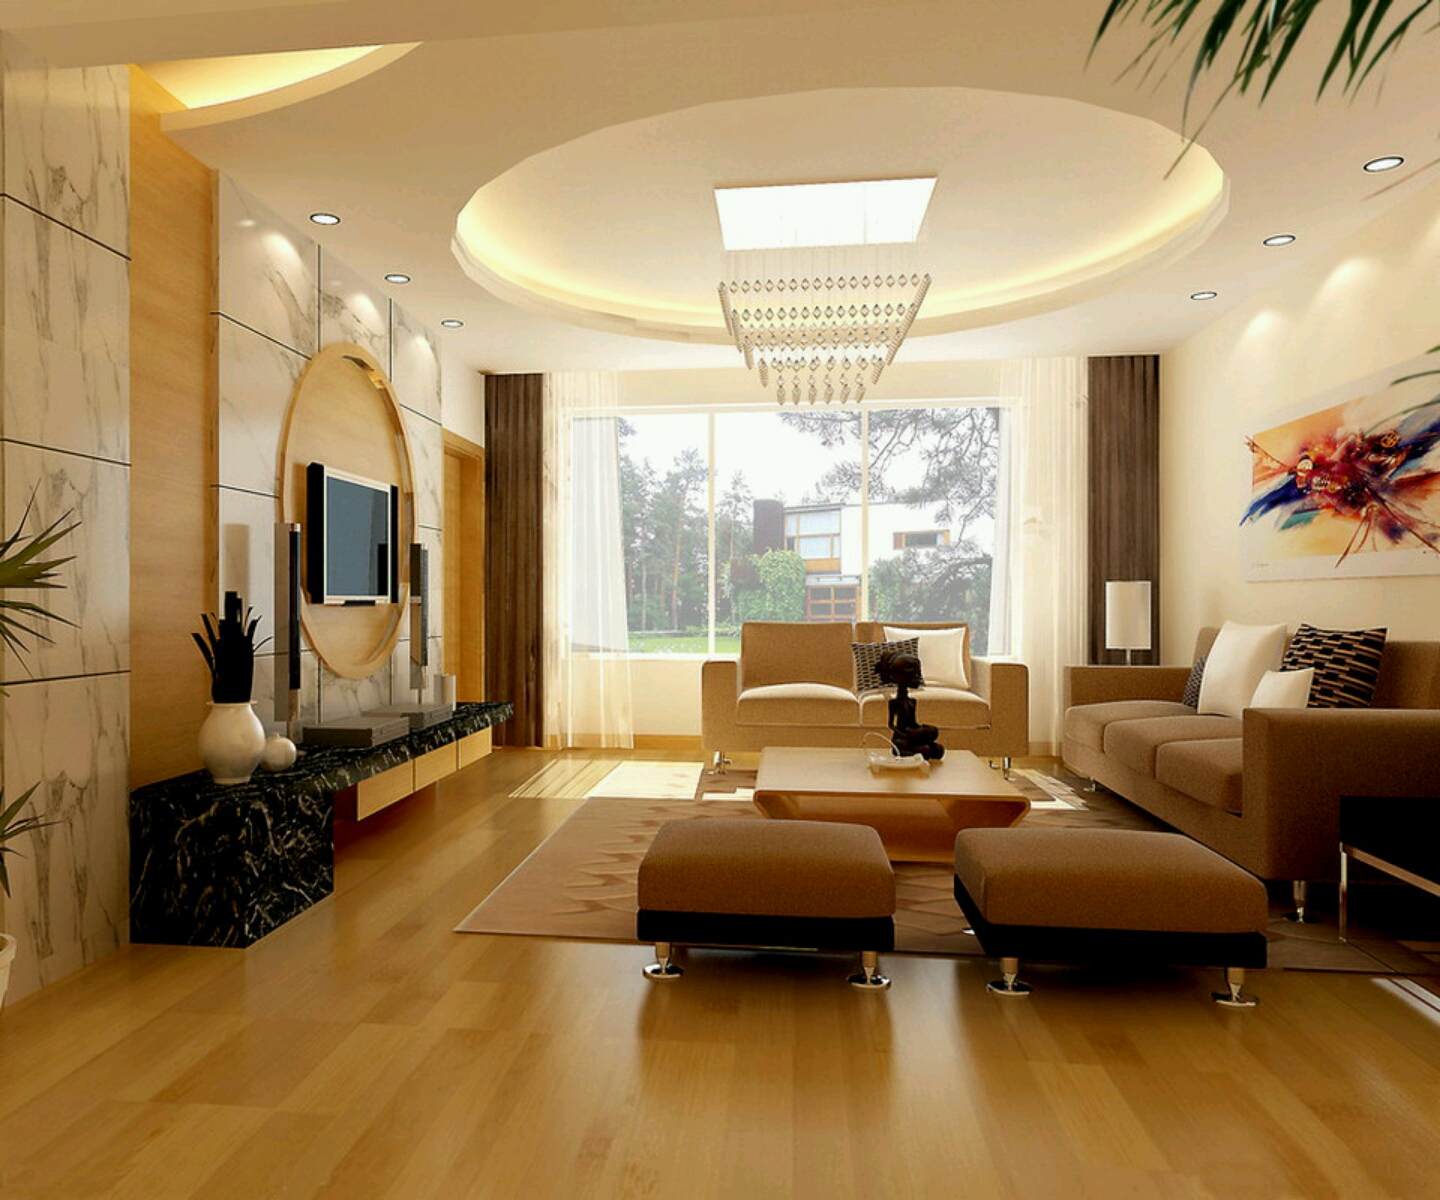 Modern interior decoration living rooms ceiling designs for Room makeover